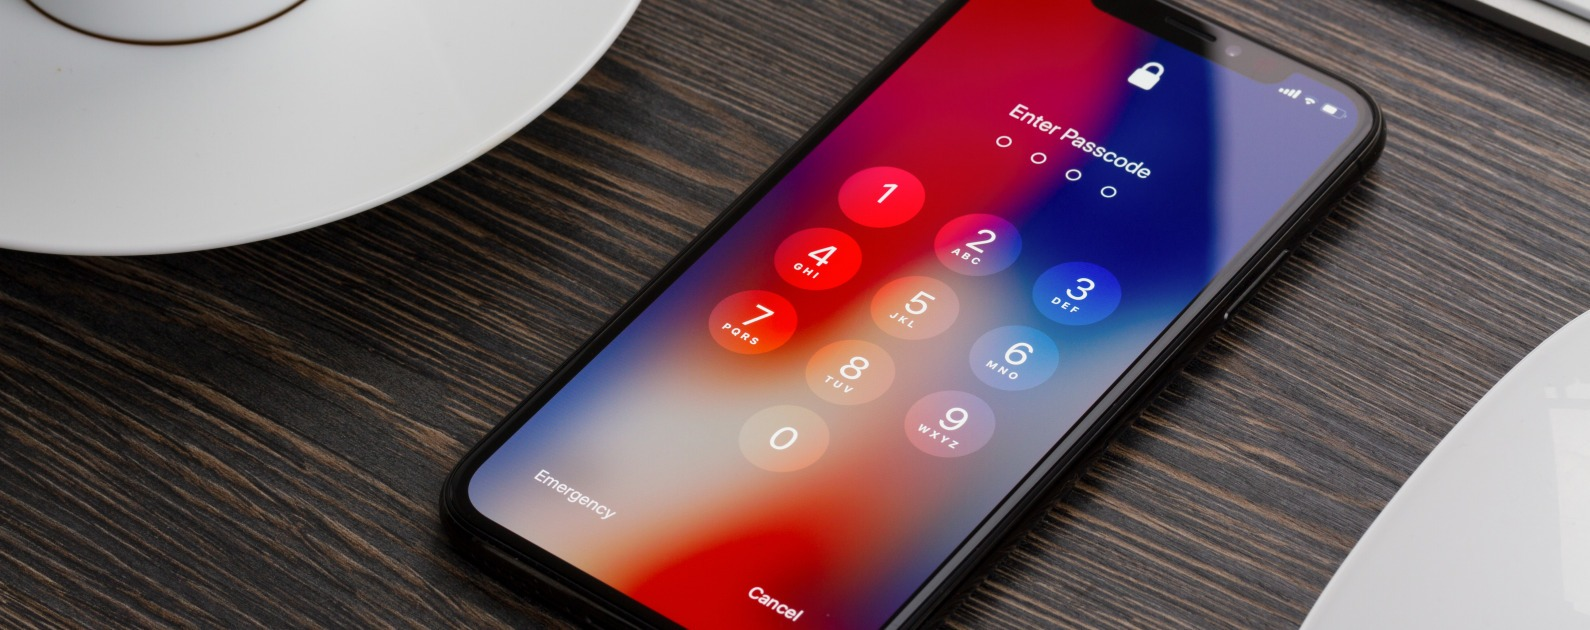 unlock iphone with security code